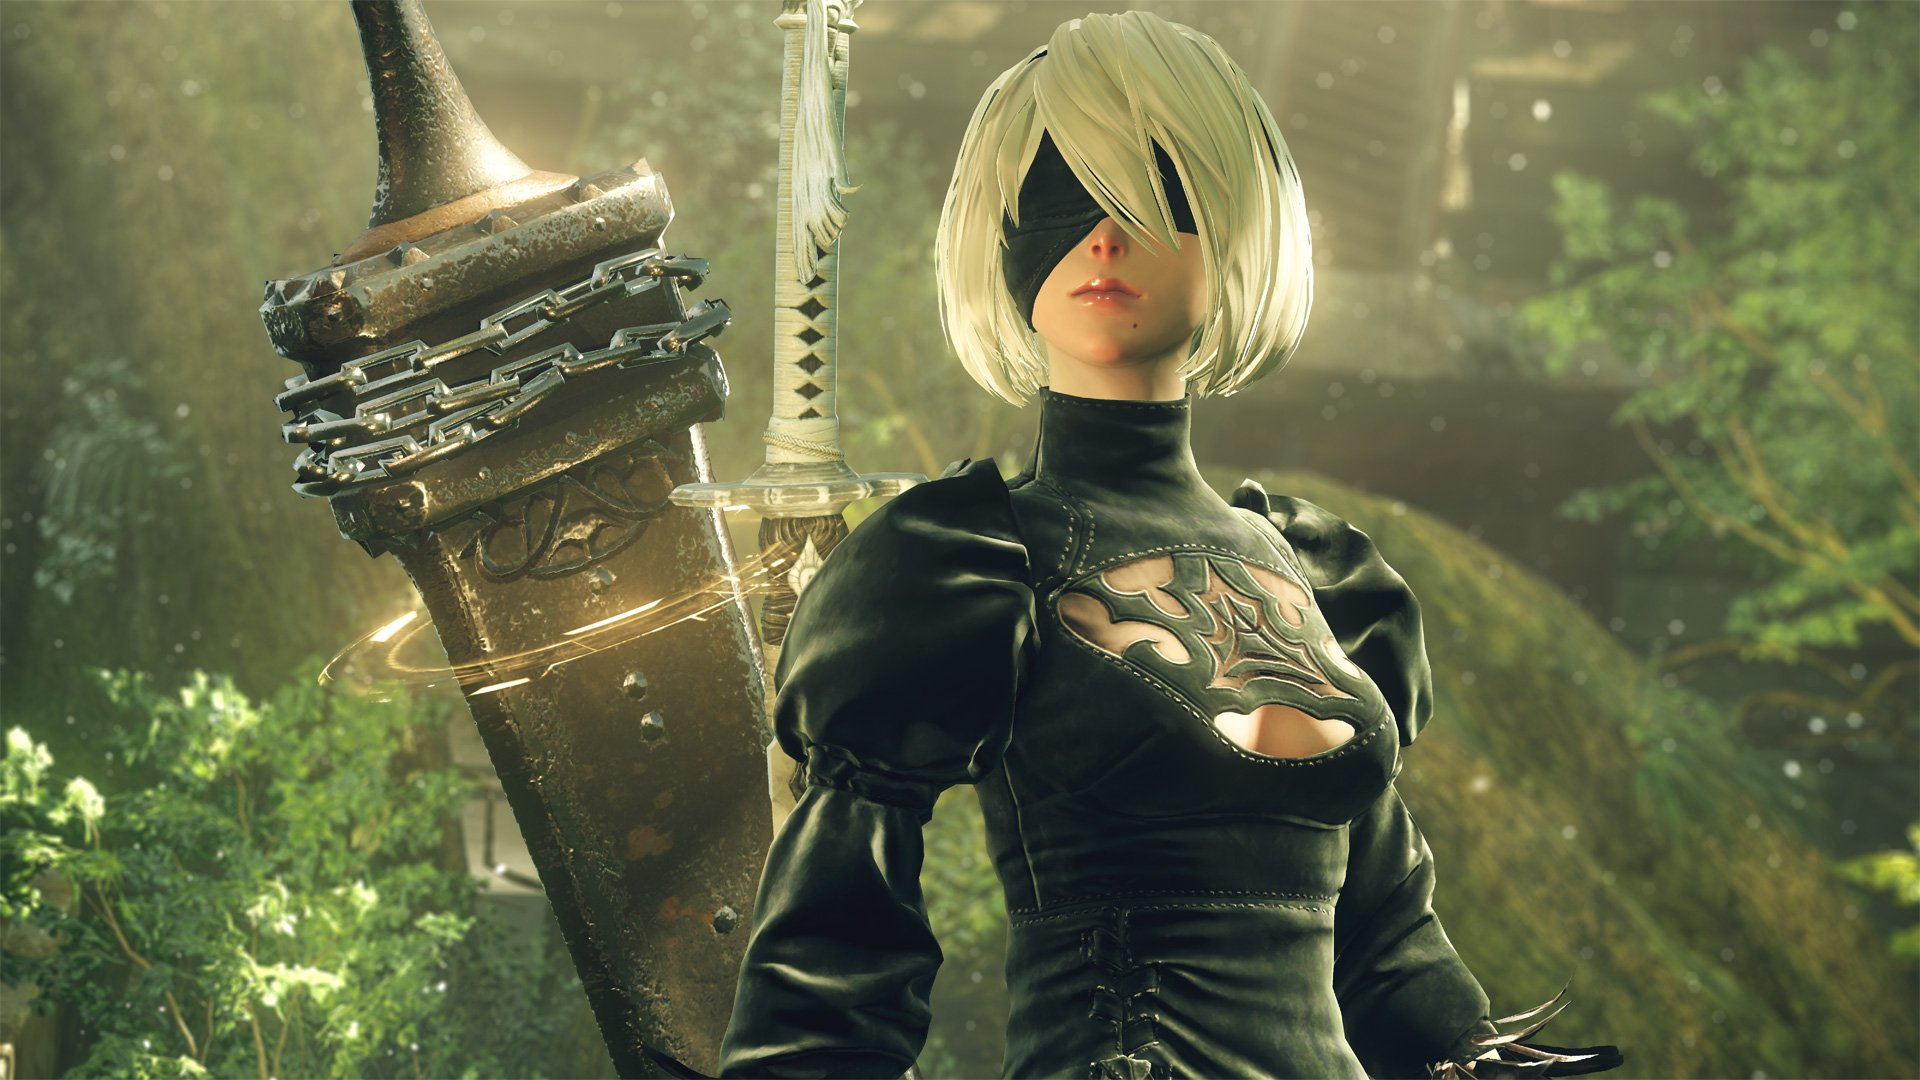 Here Is What Nier Automata Looks Like On Pc In 4k Resolution